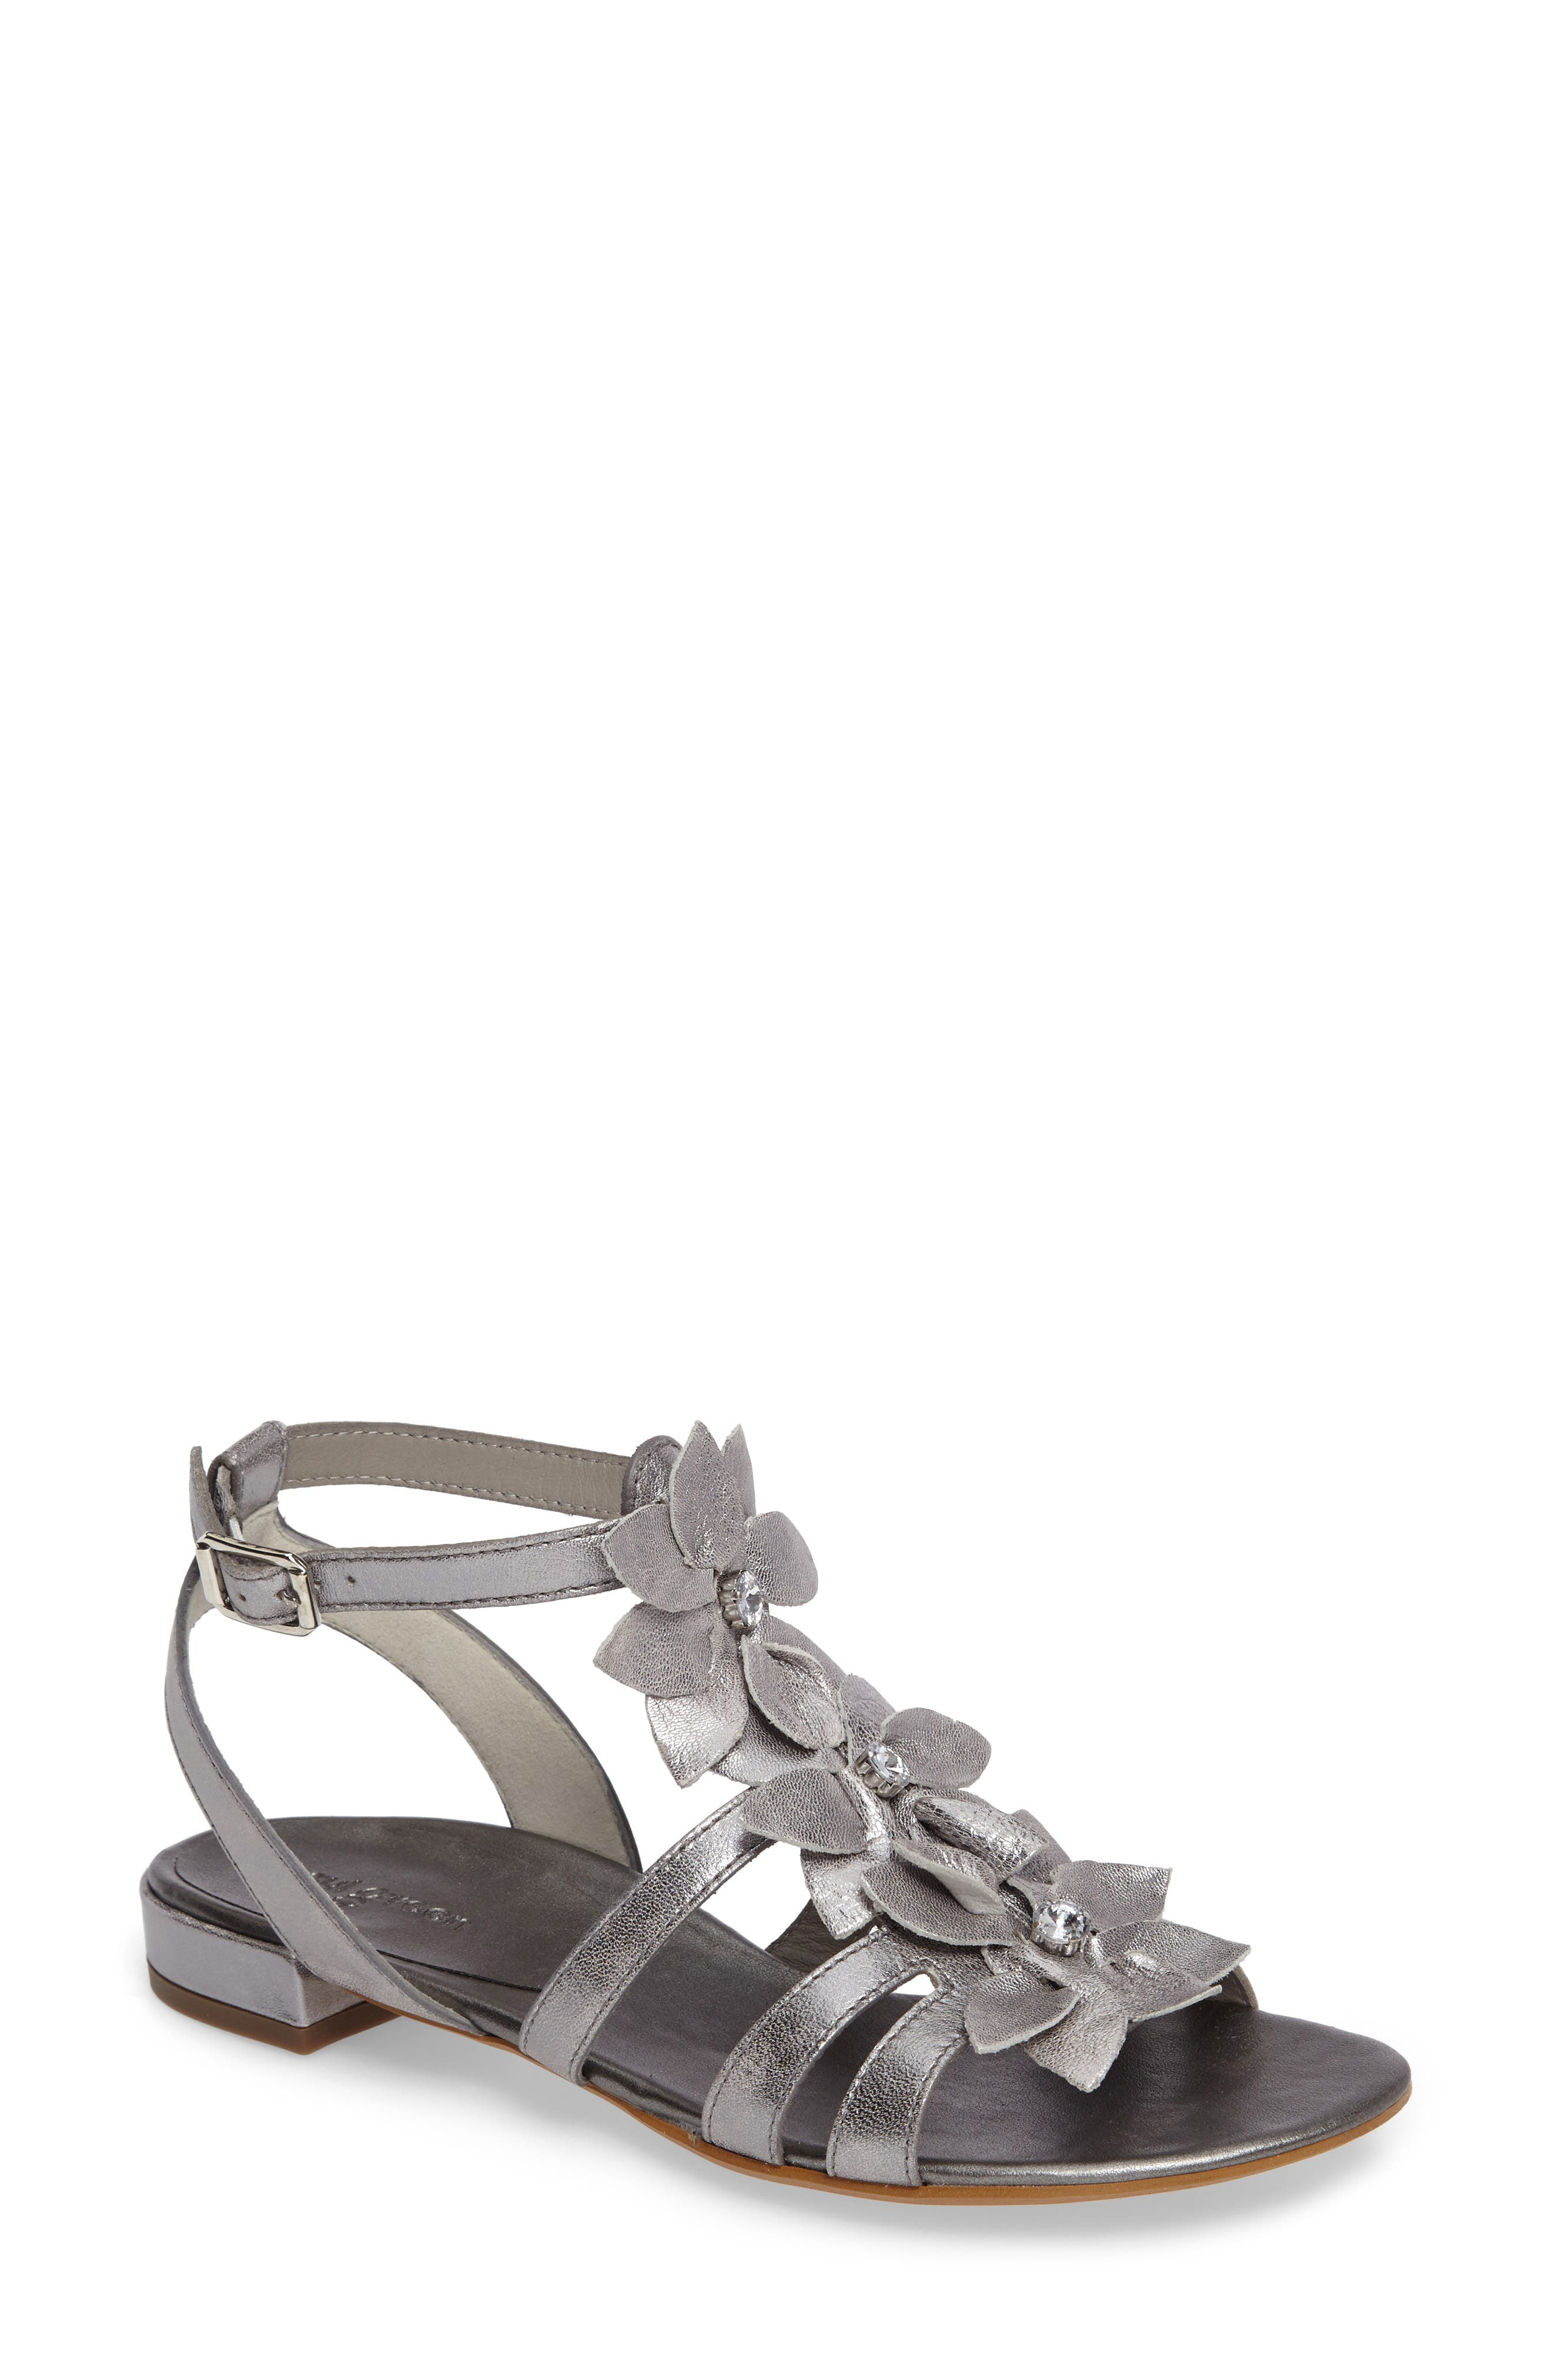 PAUL GREEN Norien Embellished Flower Sandal